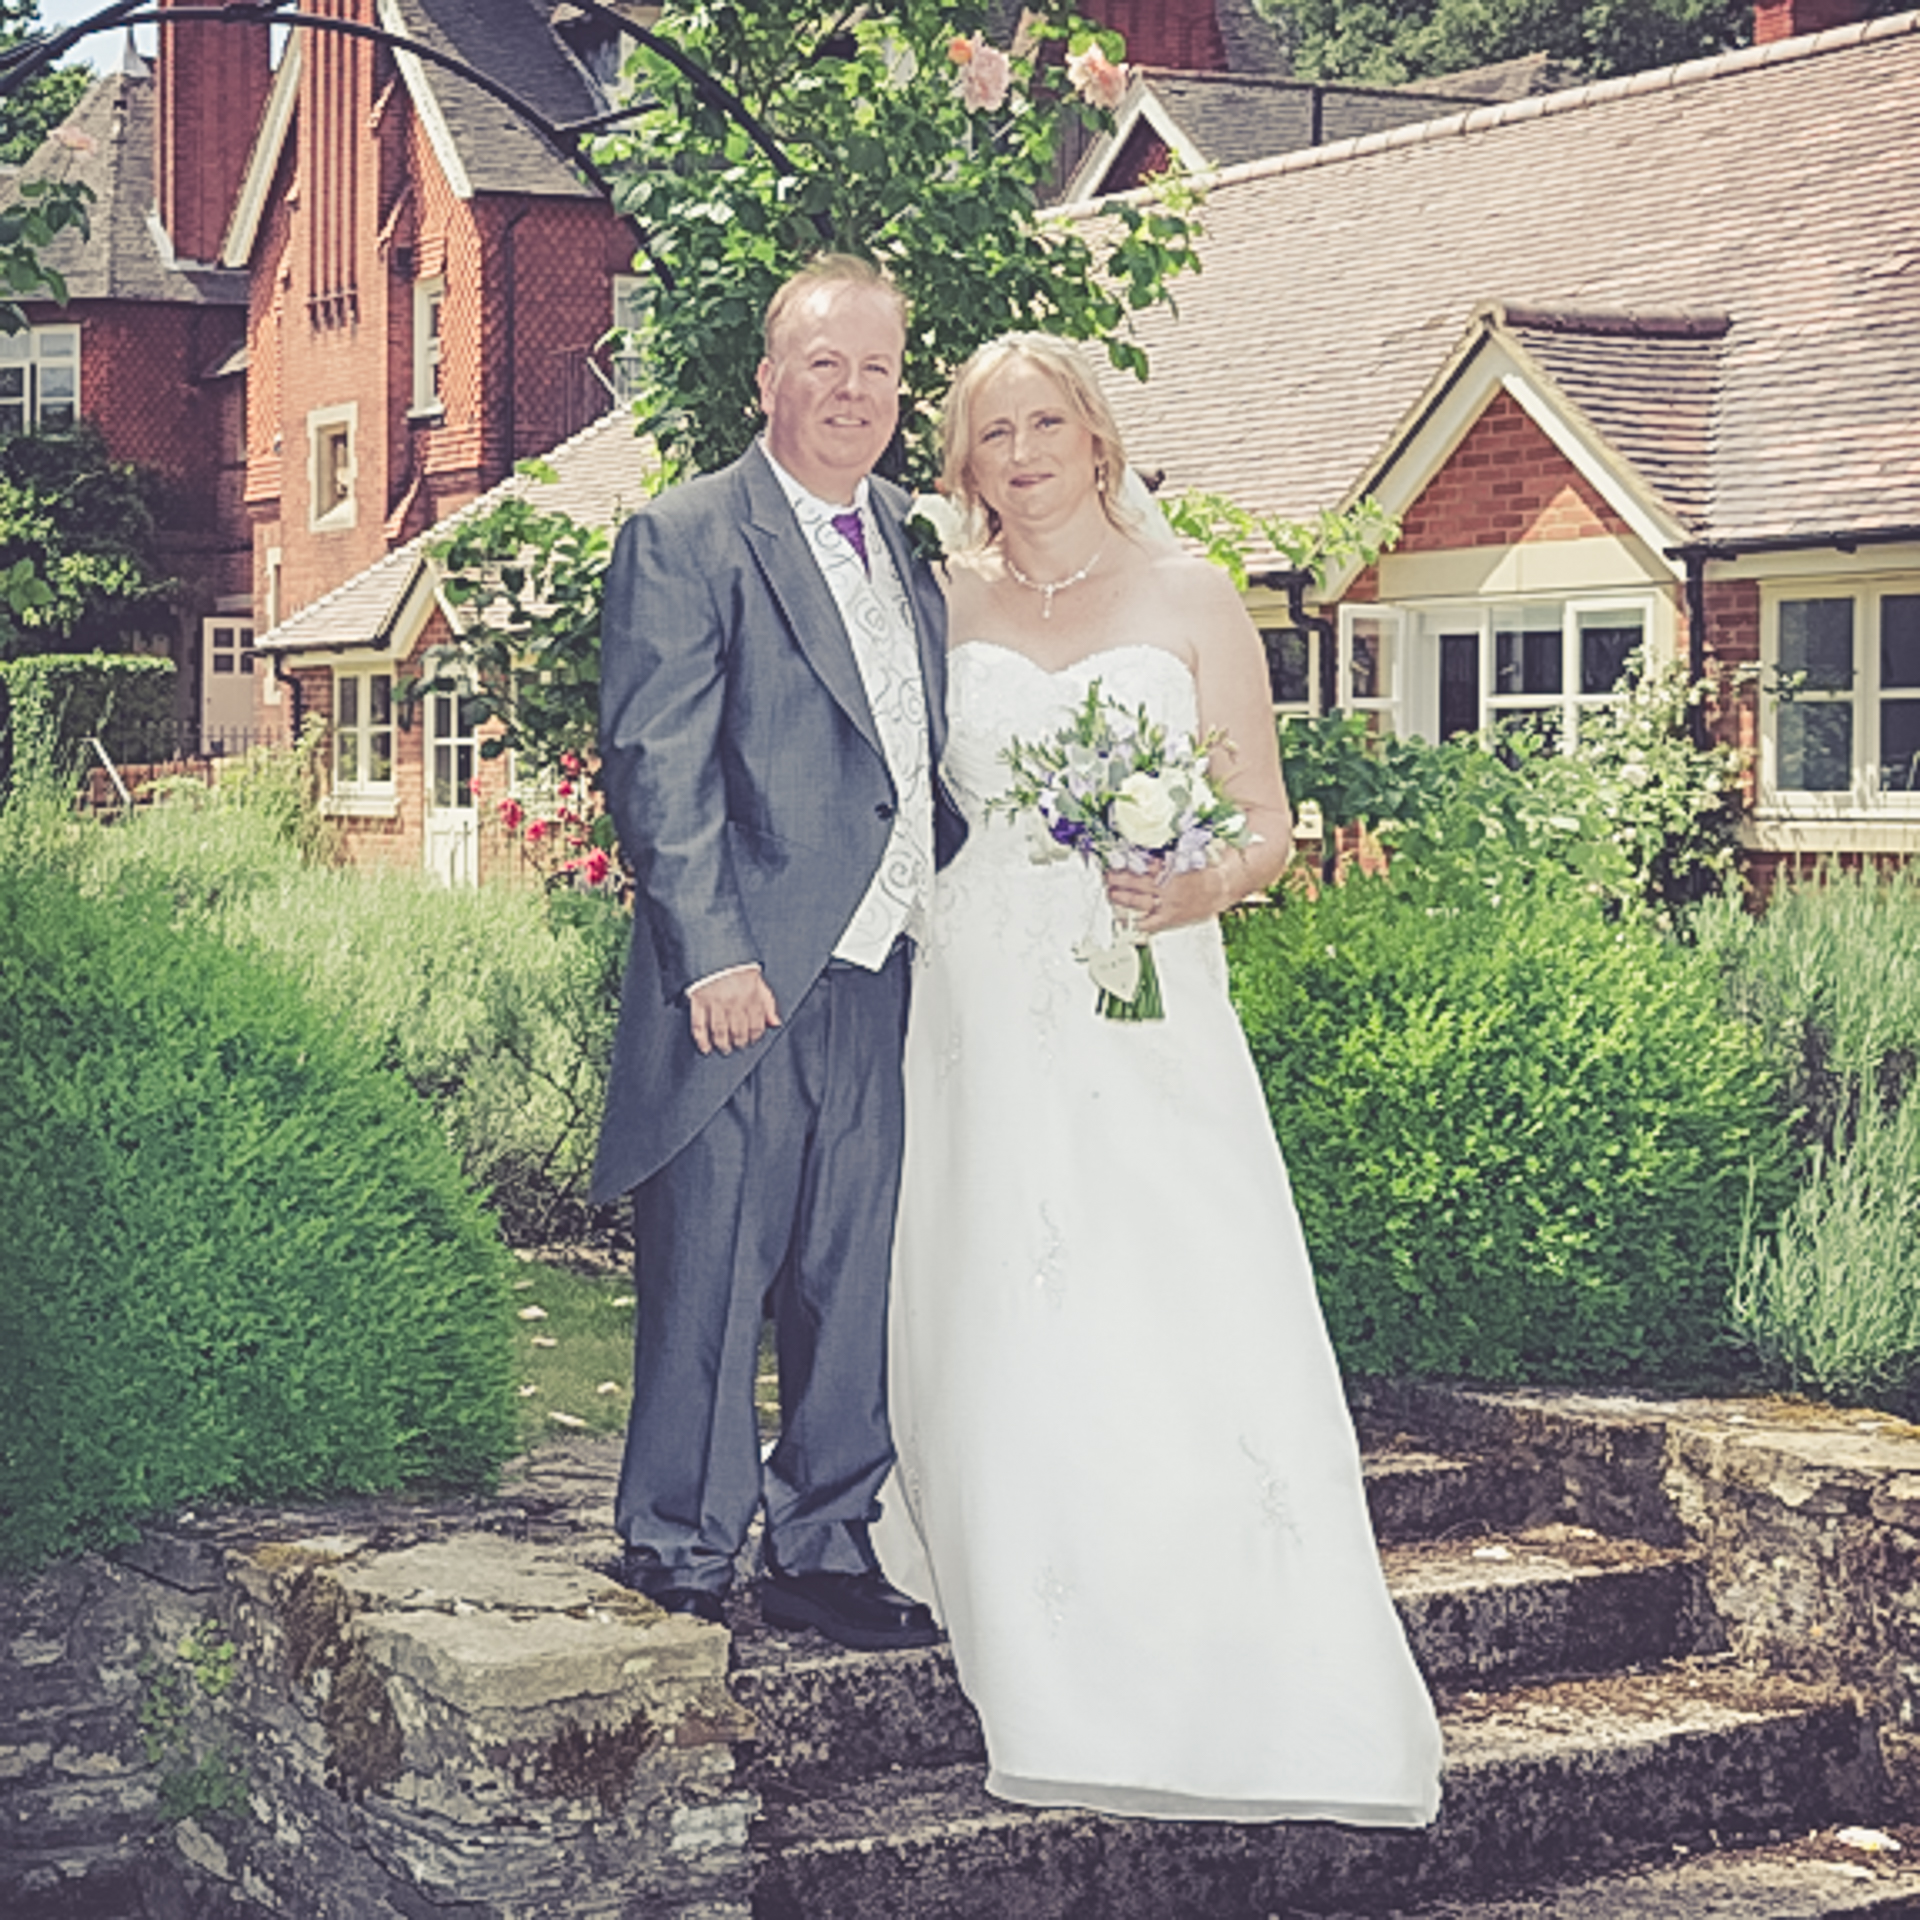 All Saints Wokingham Wedding photography_10.JPG